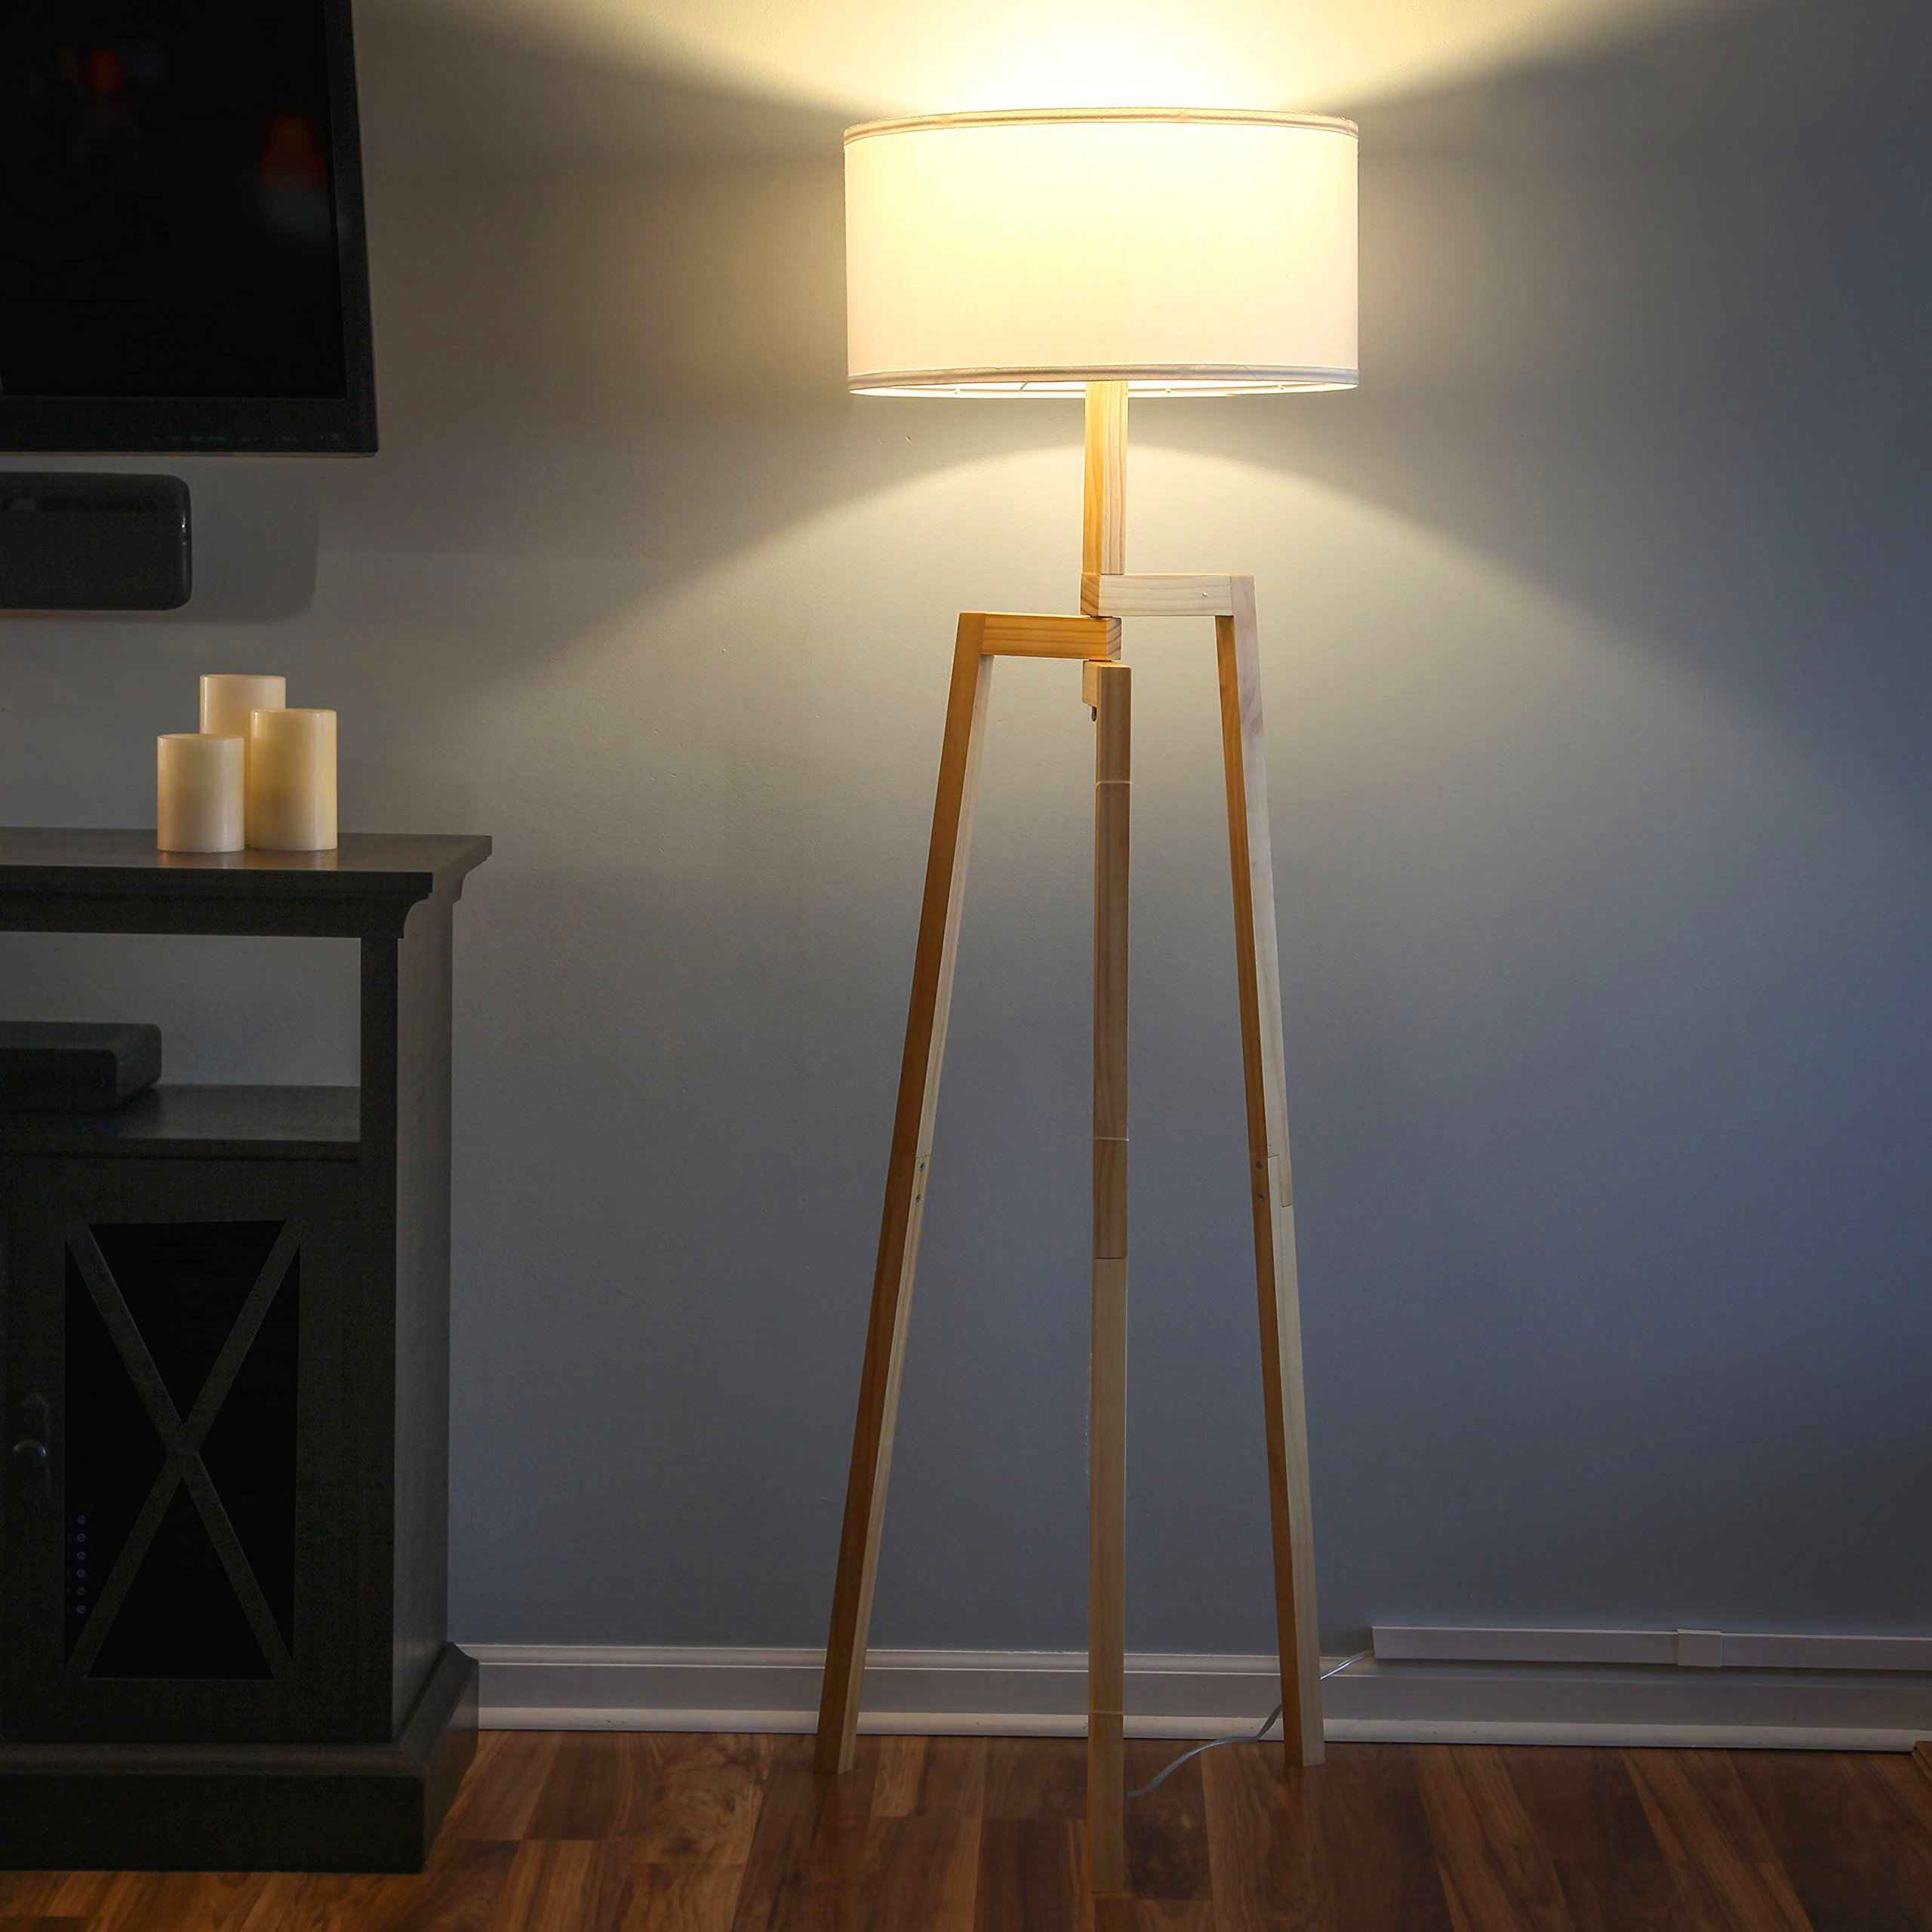 Brightech New Mia LED Tripod Floor Lamp– Modern Design Wood Mid Century Style Lighting for Contemporary Living or Family Rooms- Ambient Light Tall Standing Survey Lamp for Bedroom, Office- White Shade by Brightech (Image #6)